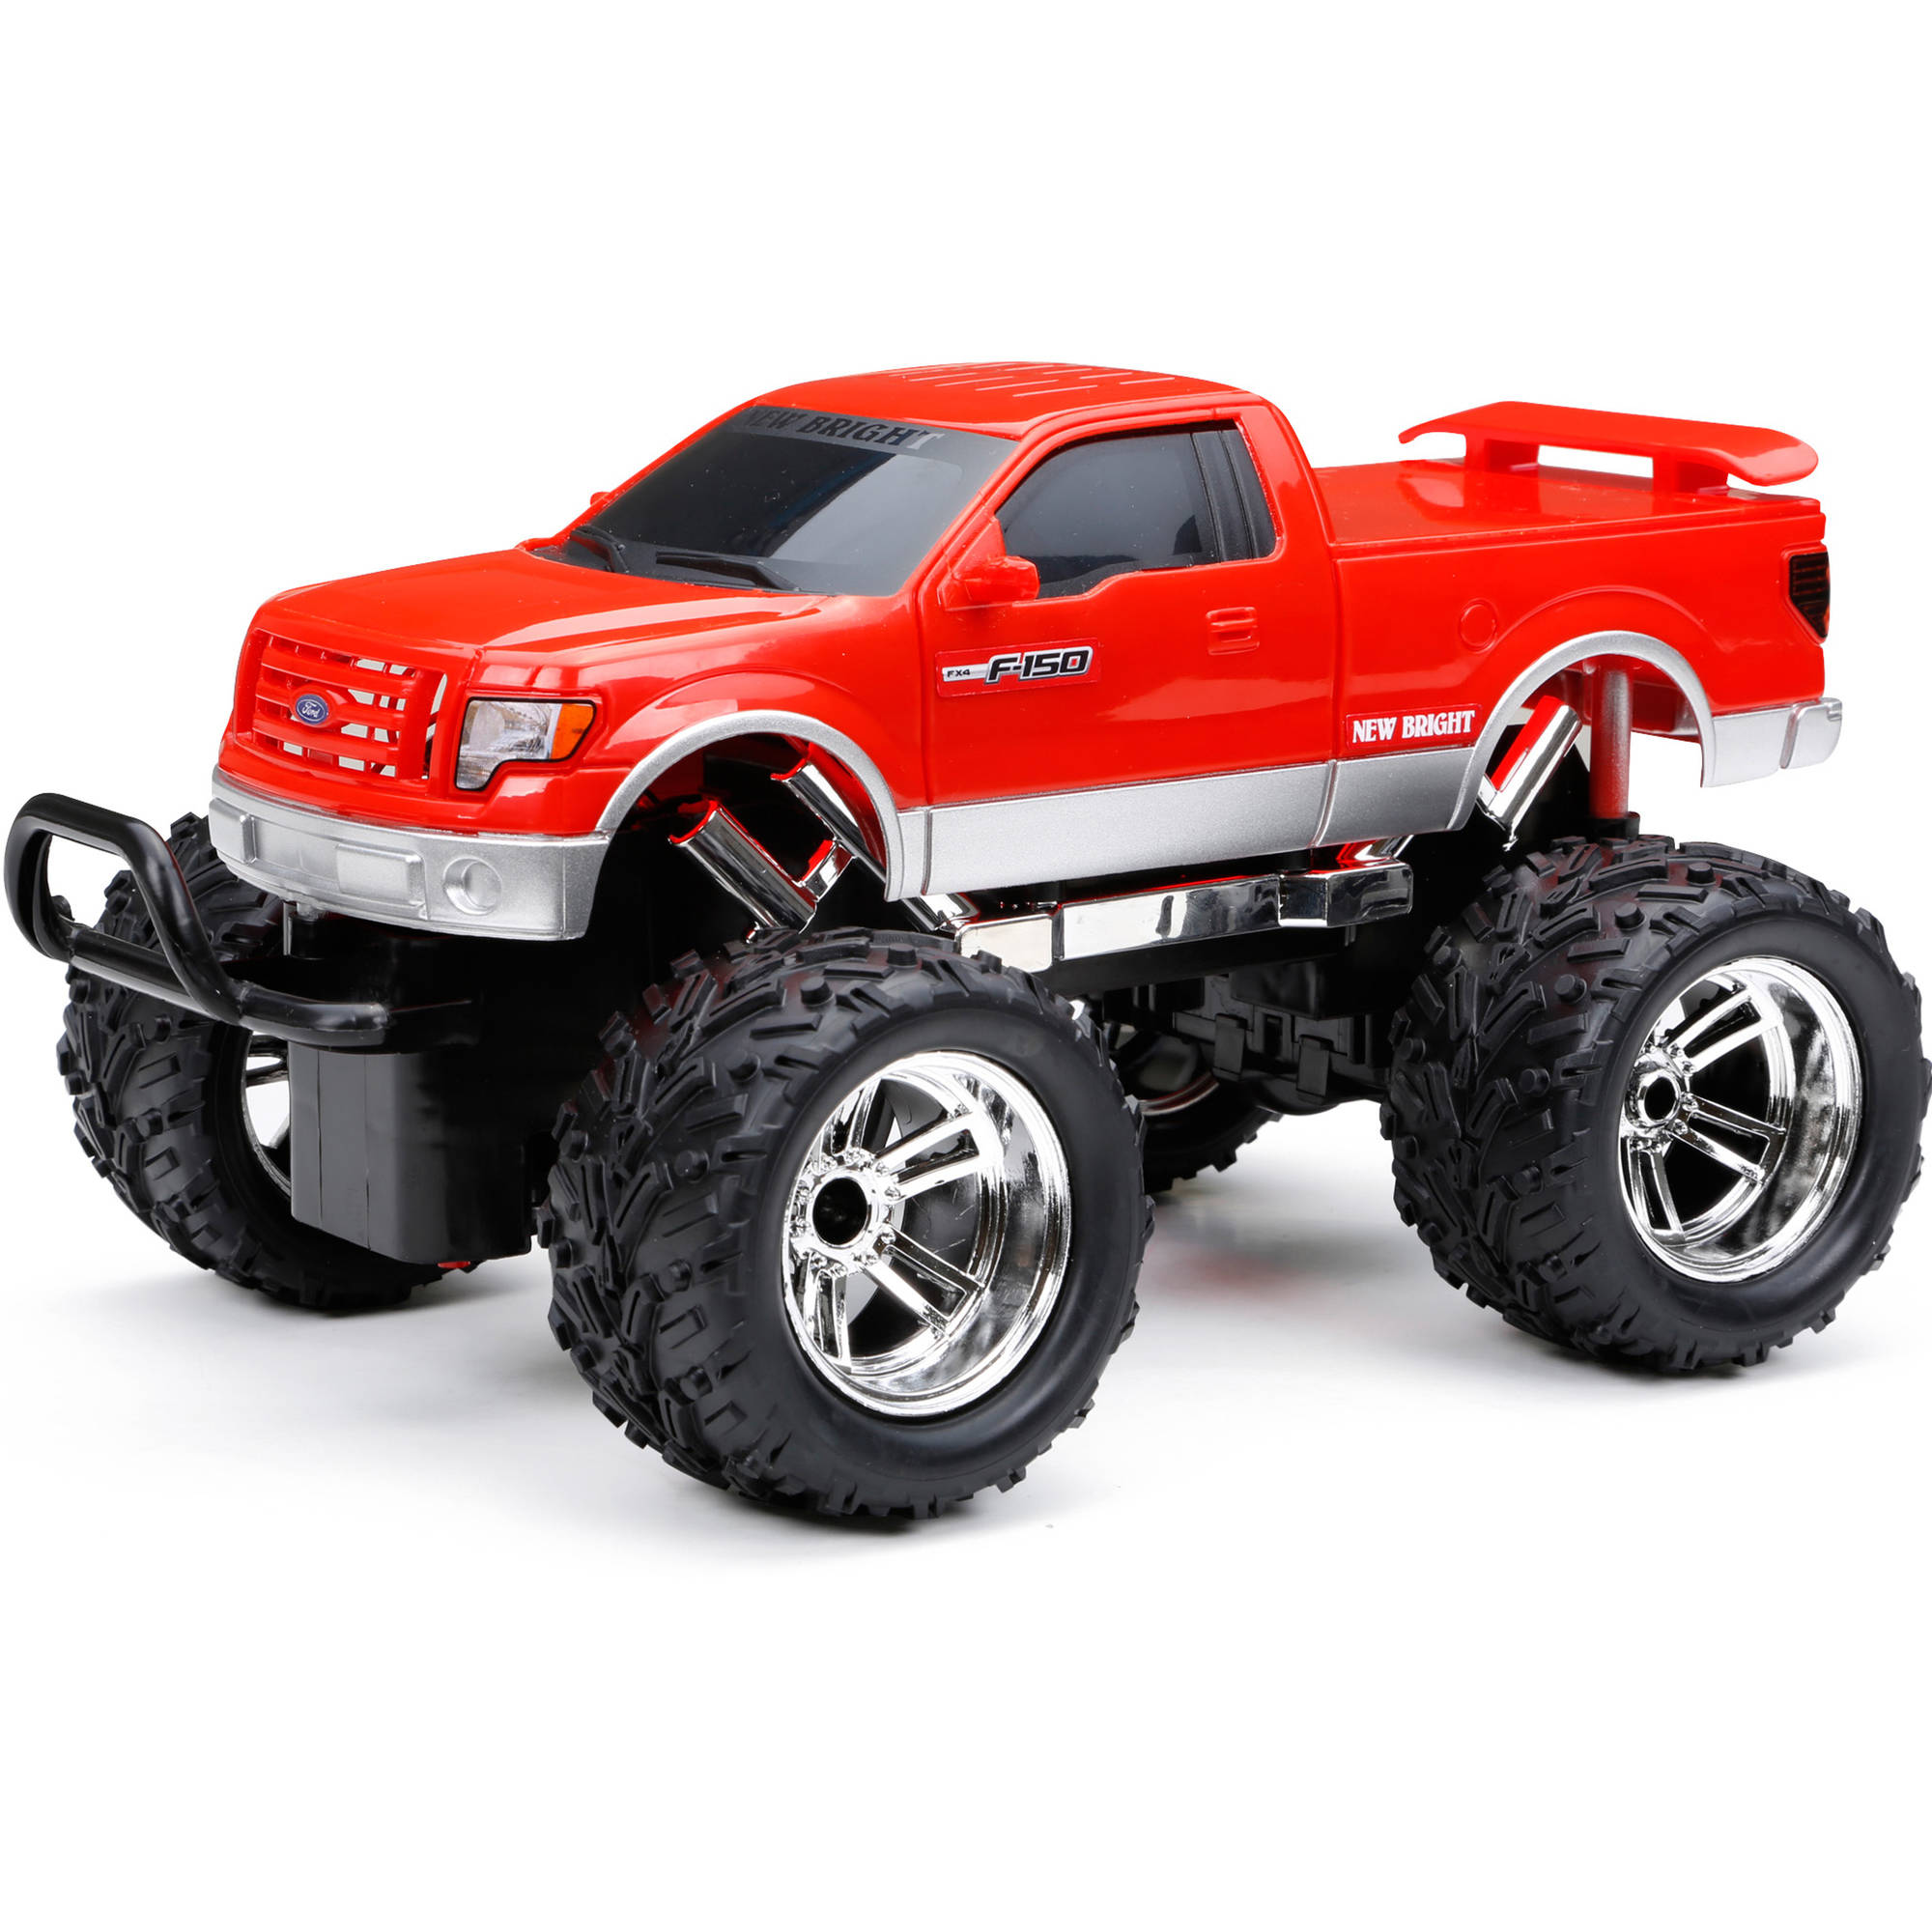 New Bright 1:16 Radio-Control Full-Function Ford F-150 Truck, Yellow